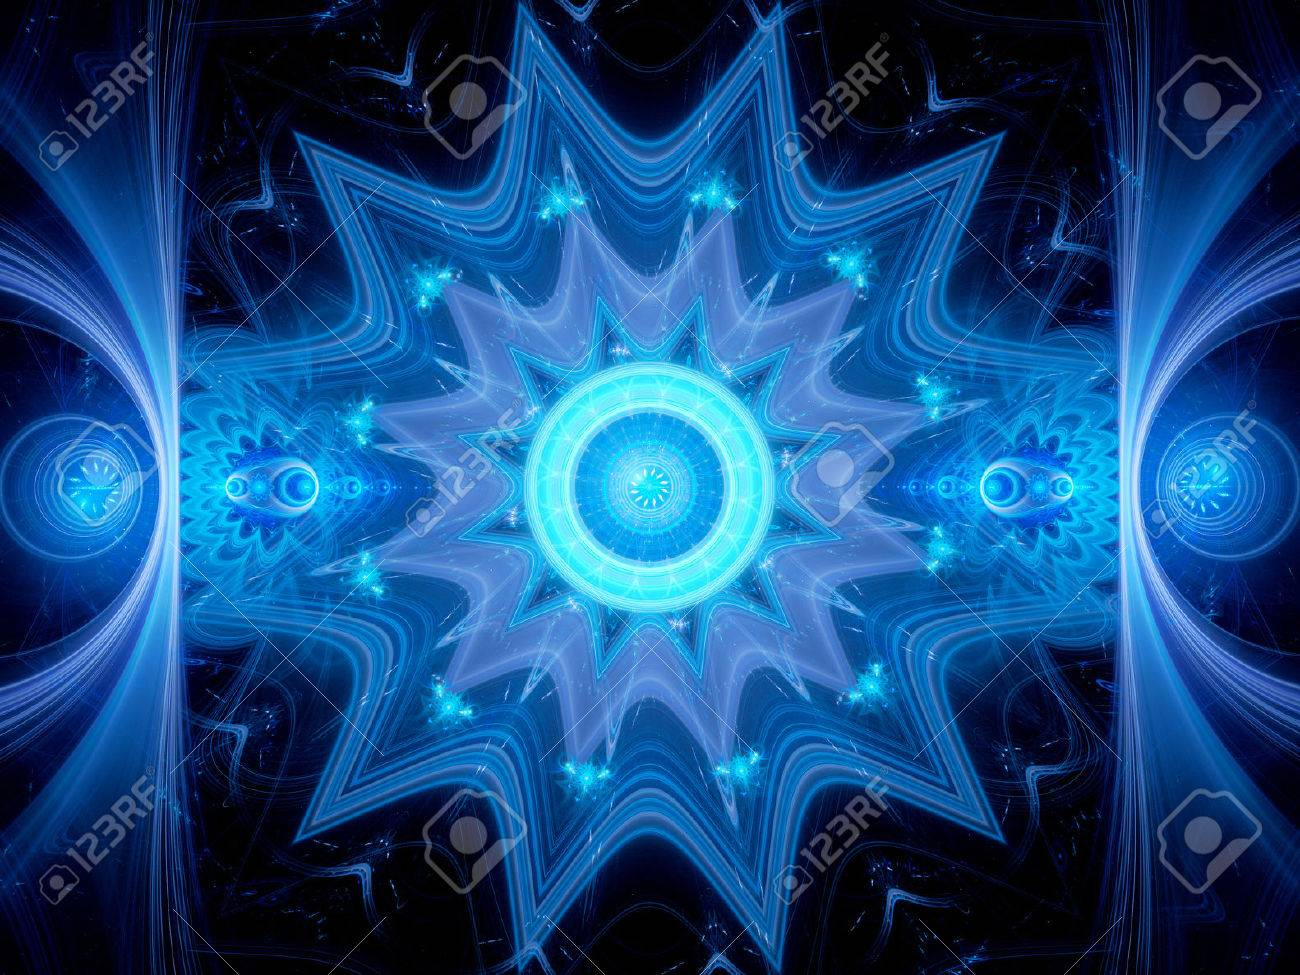 magical blue glowing mandala in space computer generated abstract